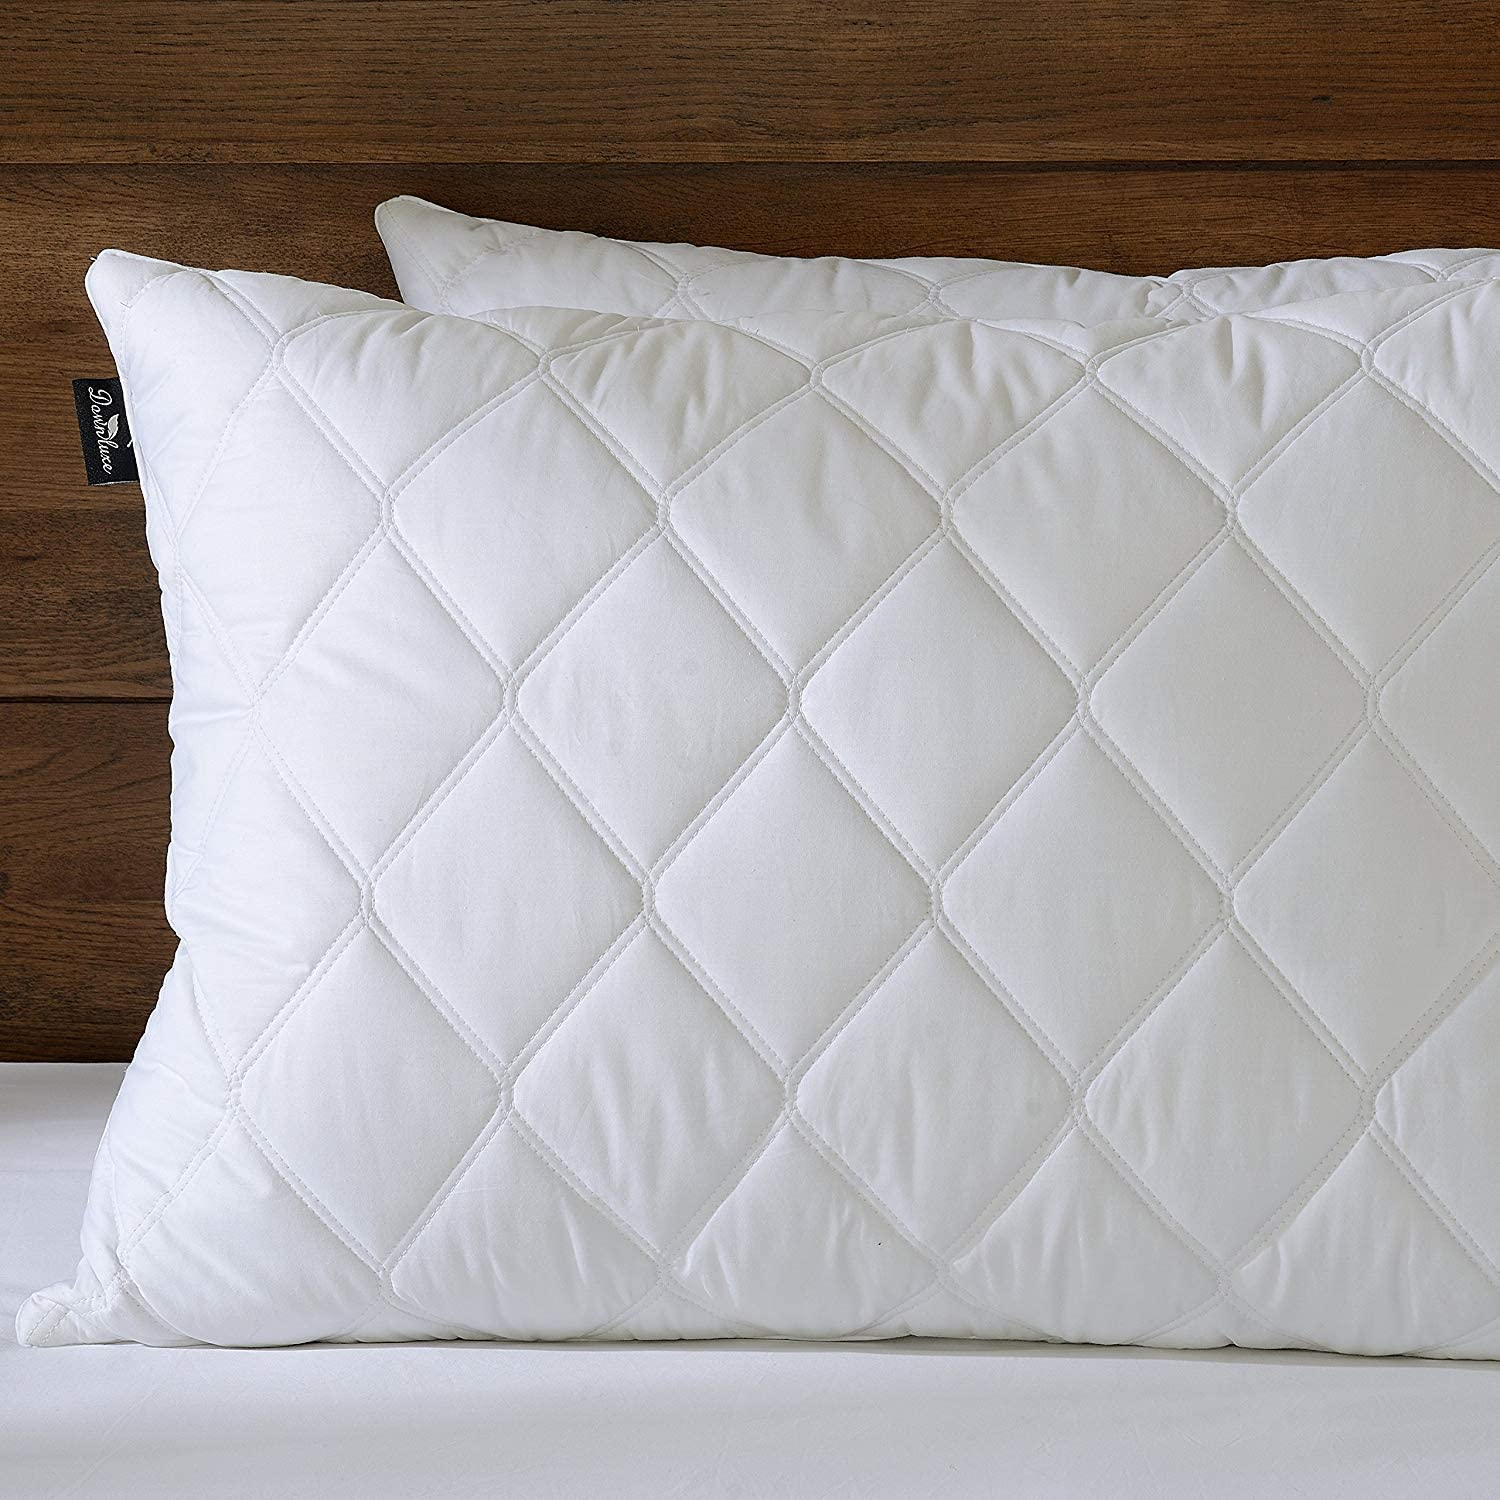 Amazon Com Downluxe Quilted Down Feather Pillows 100 Cotton Downproof Cover Suprior Quality Bed Pillows For Sleeping Set Of 2 Queen 20x28 Home Kitchen